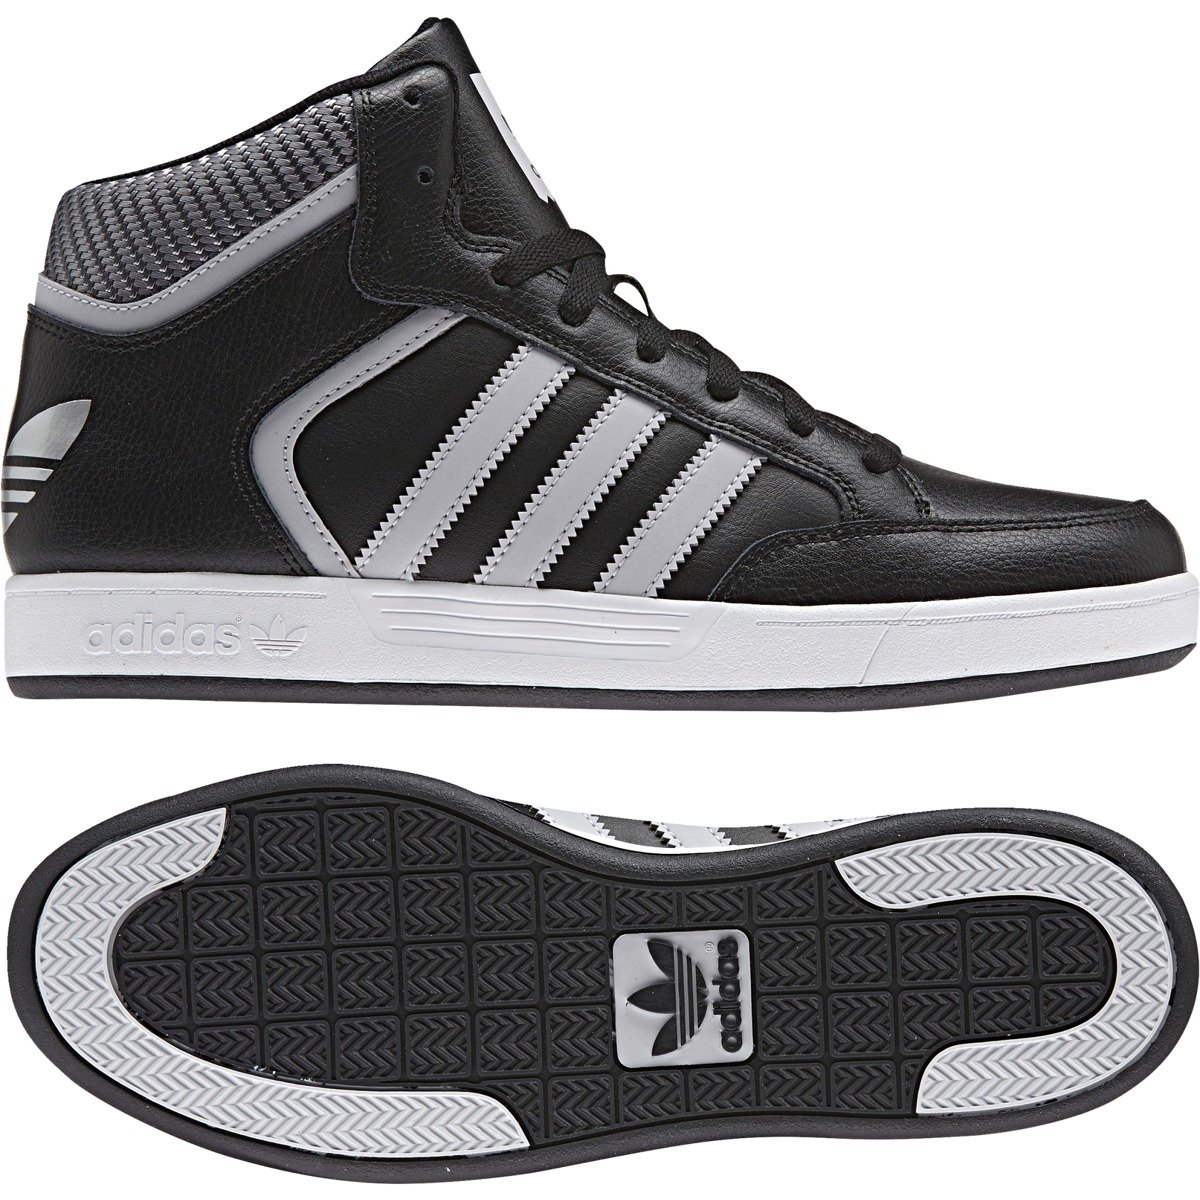 adidas varial mid shoes bb8769 basketball shoes. Black Bedroom Furniture Sets. Home Design Ideas